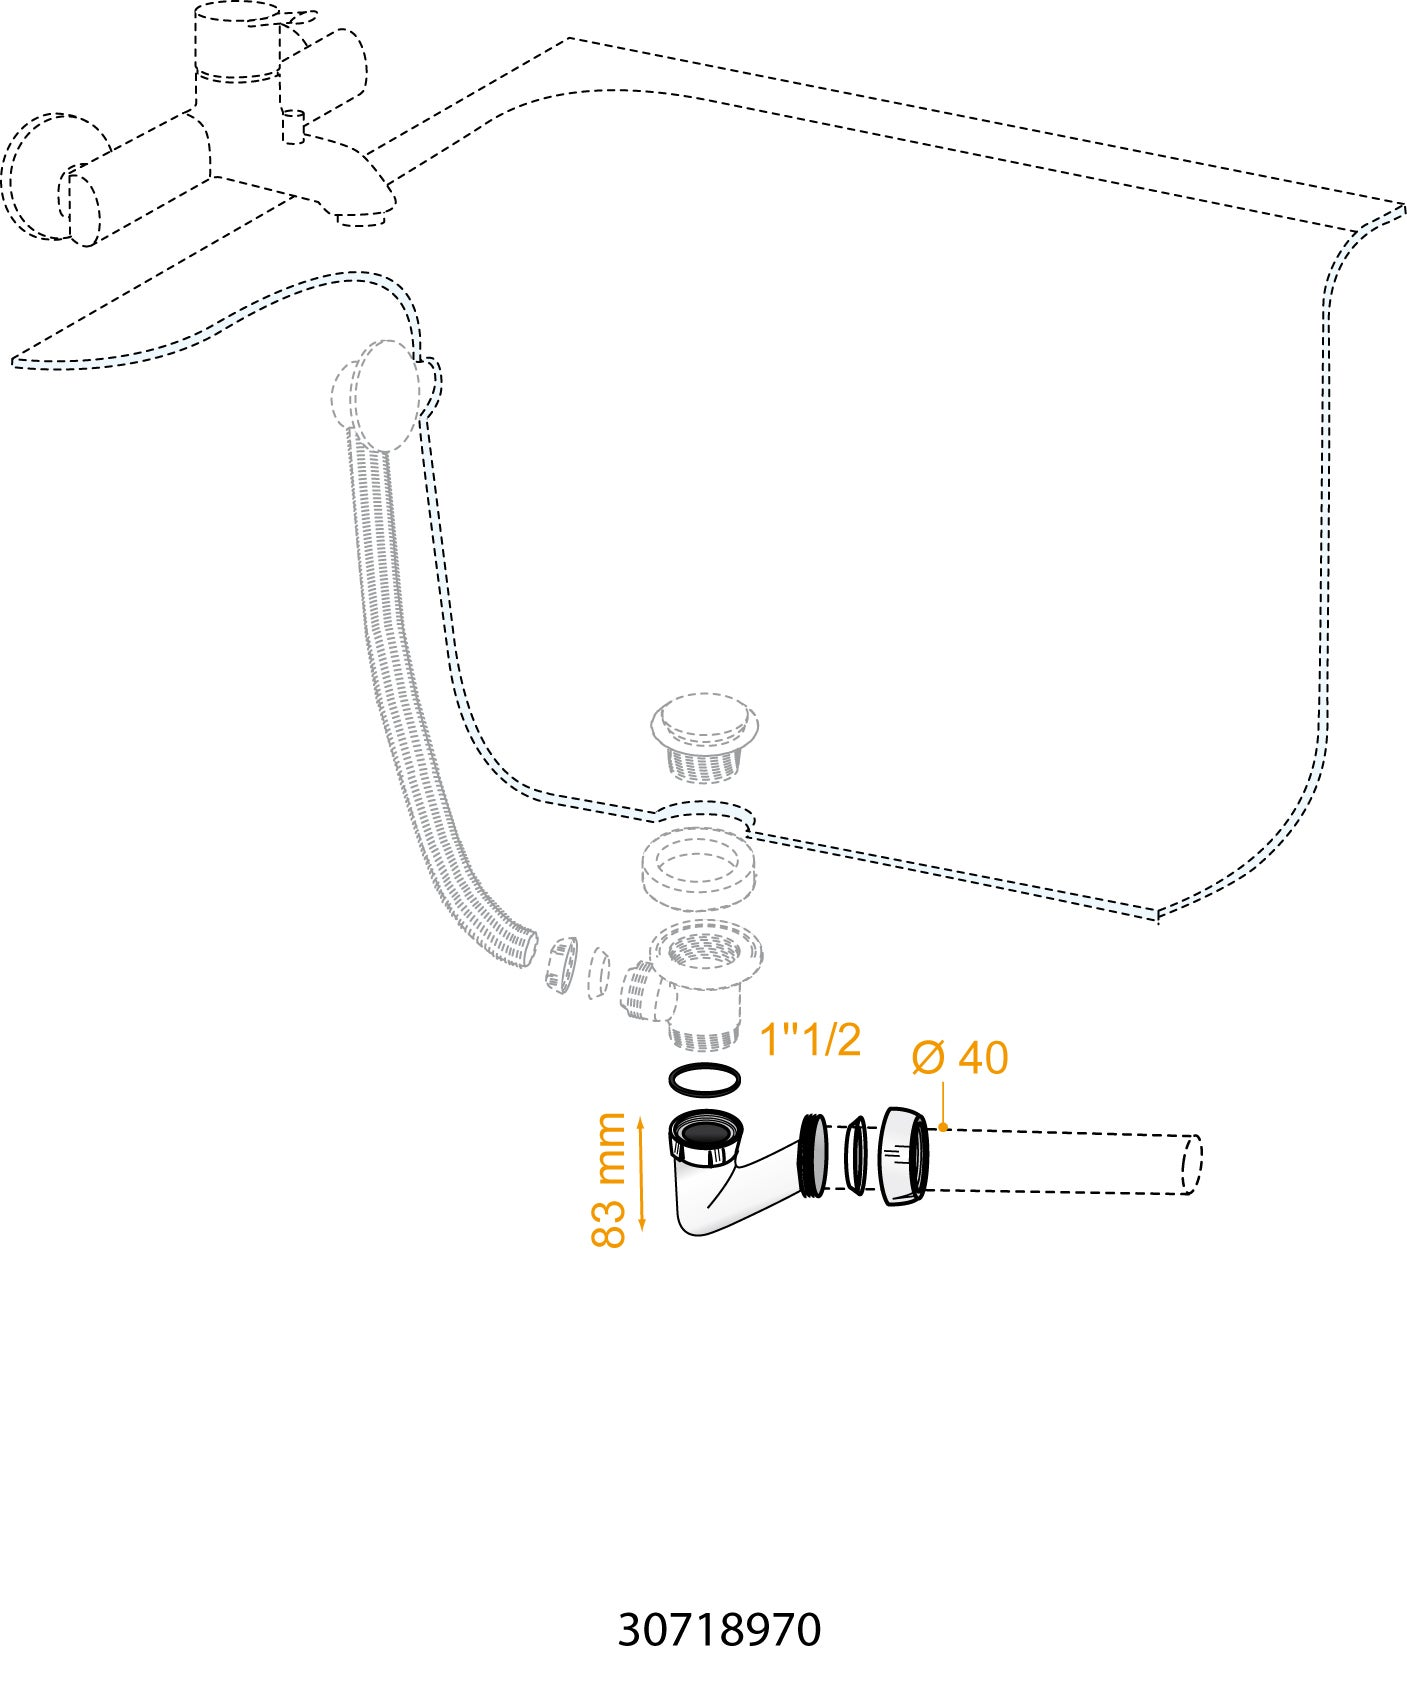 Siphon Baignoire Extra Plat Wirquin Leroy Merlin